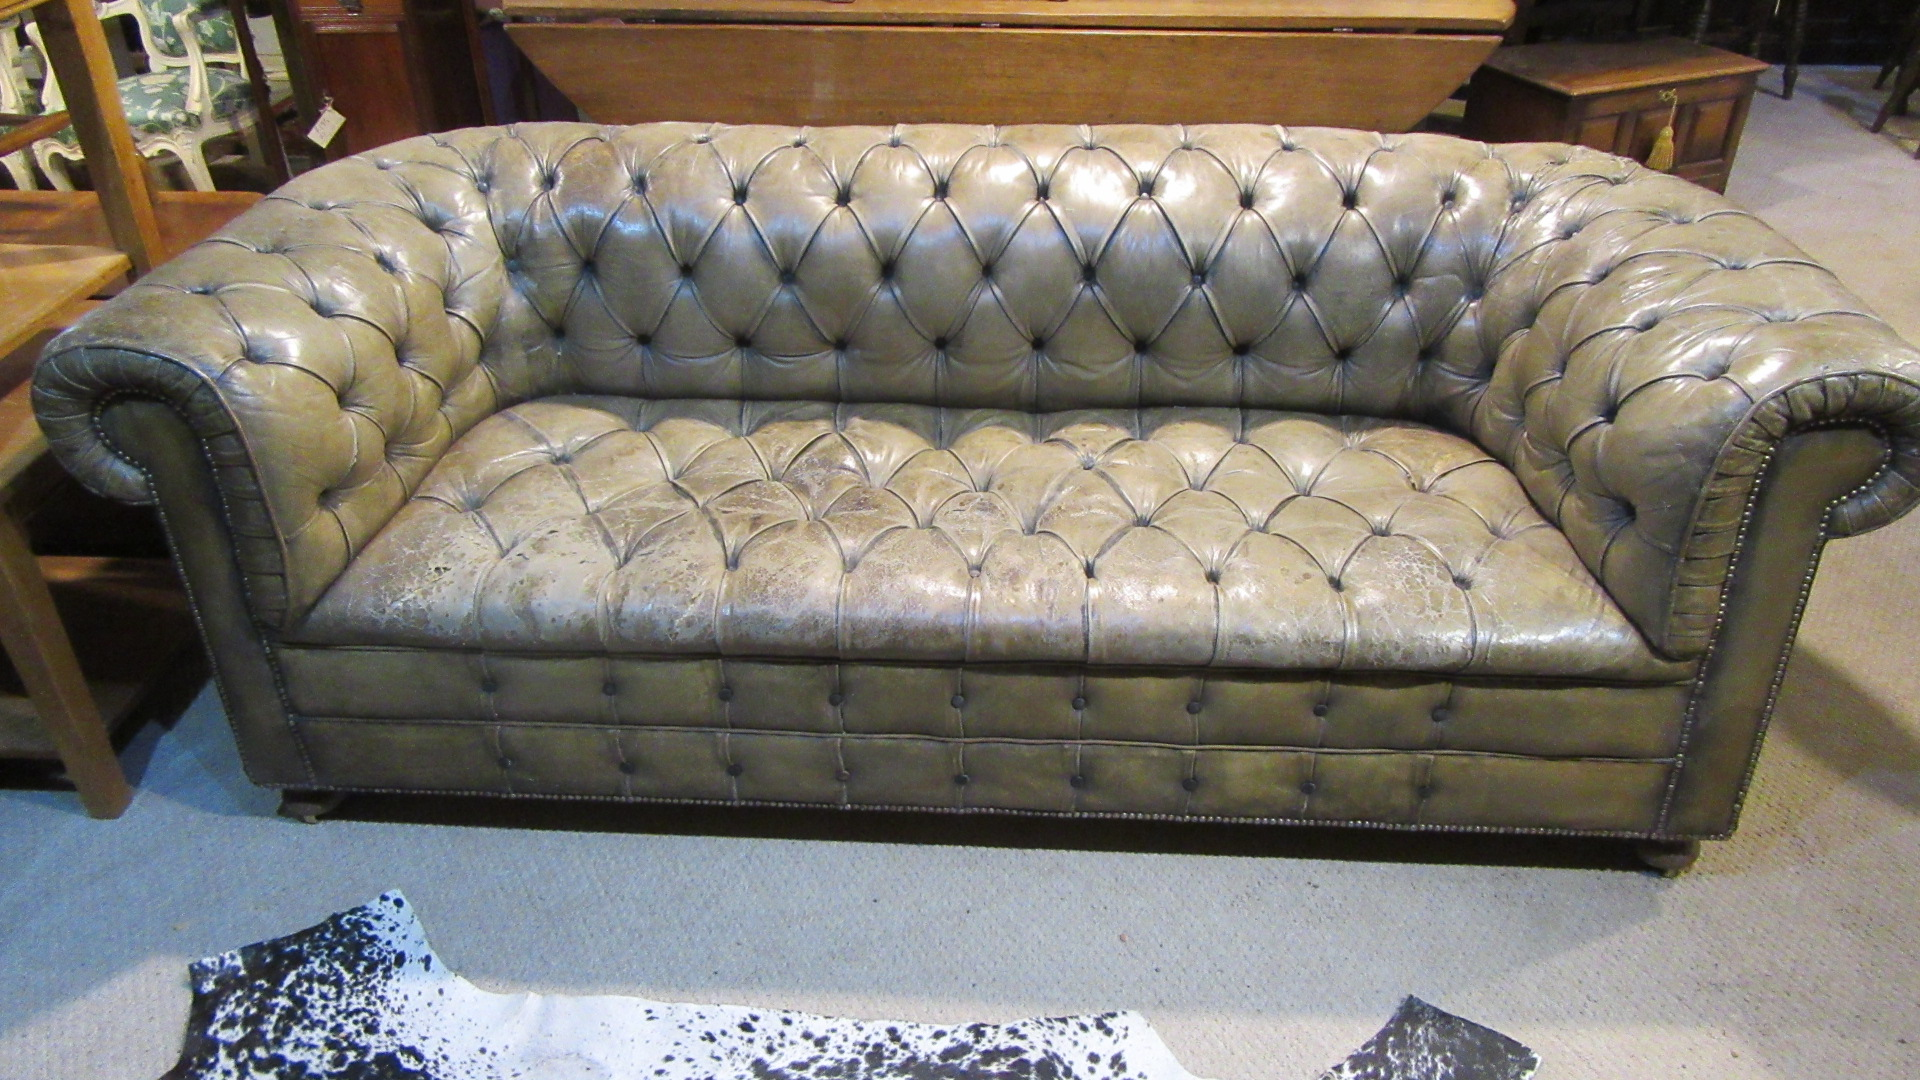 ANTIQUE EDWARDIAN DEEP BUTTONED LEATHER CHESTERFIELD SOFA